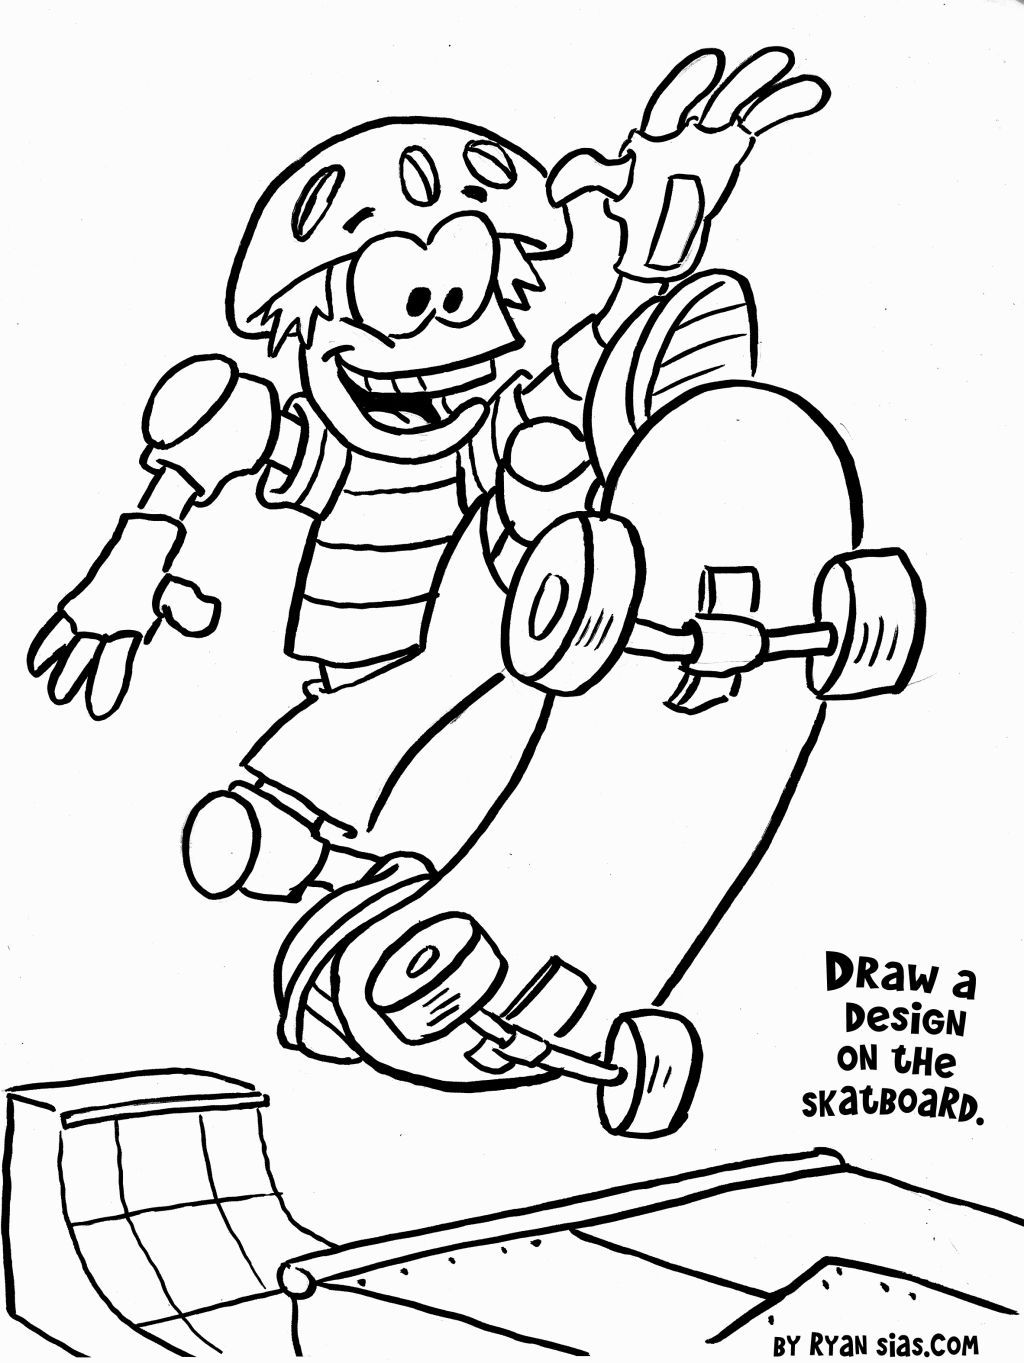 Sports Coloring Sheets Sports Coloring Pages Football Coloring Pages Coloring Pages For Kids